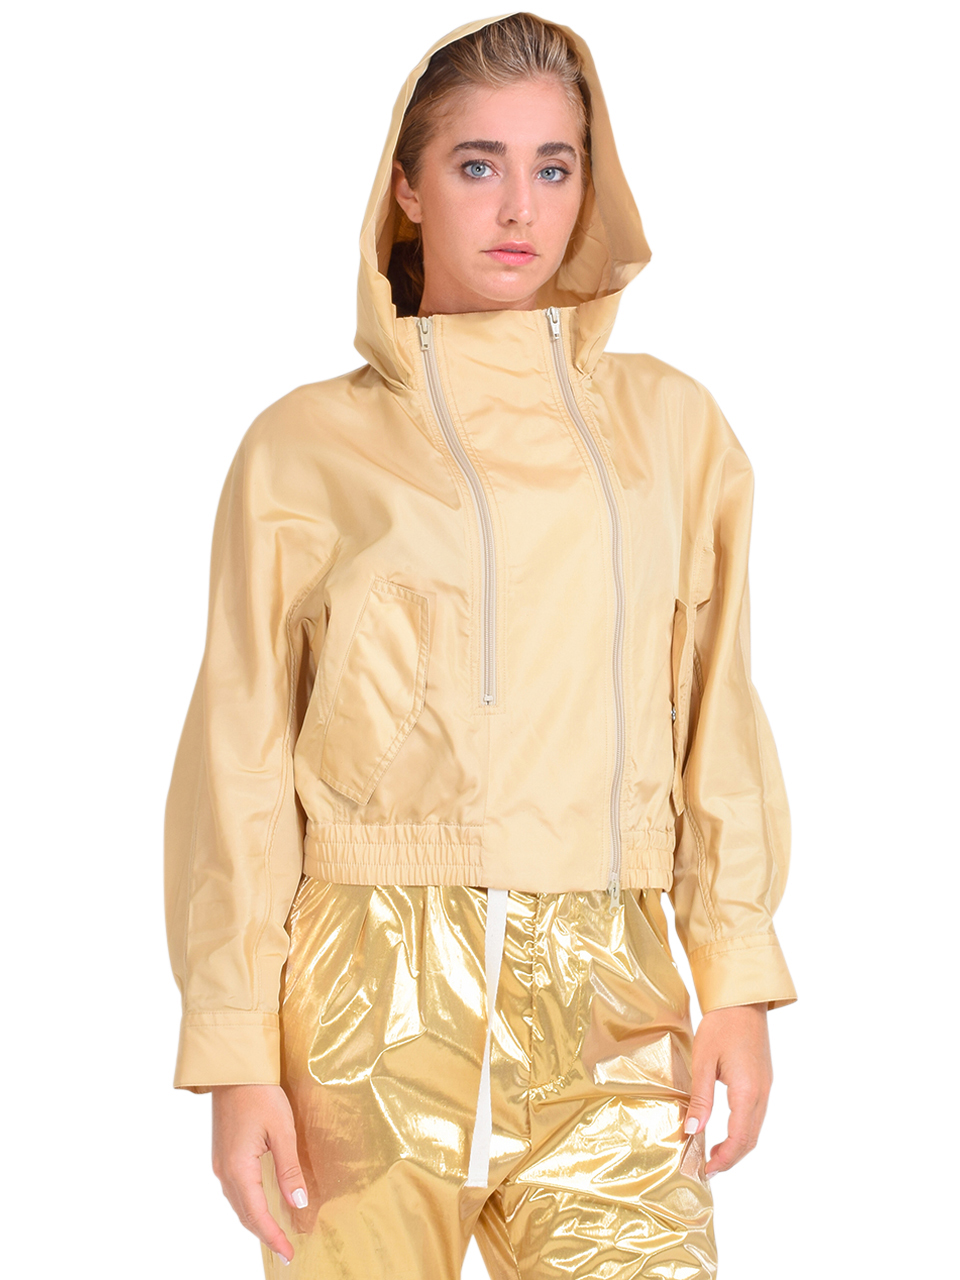 3.1 Phillip Lim Taffeta Hooded Boxing Jacket in Tan Side View with Hood